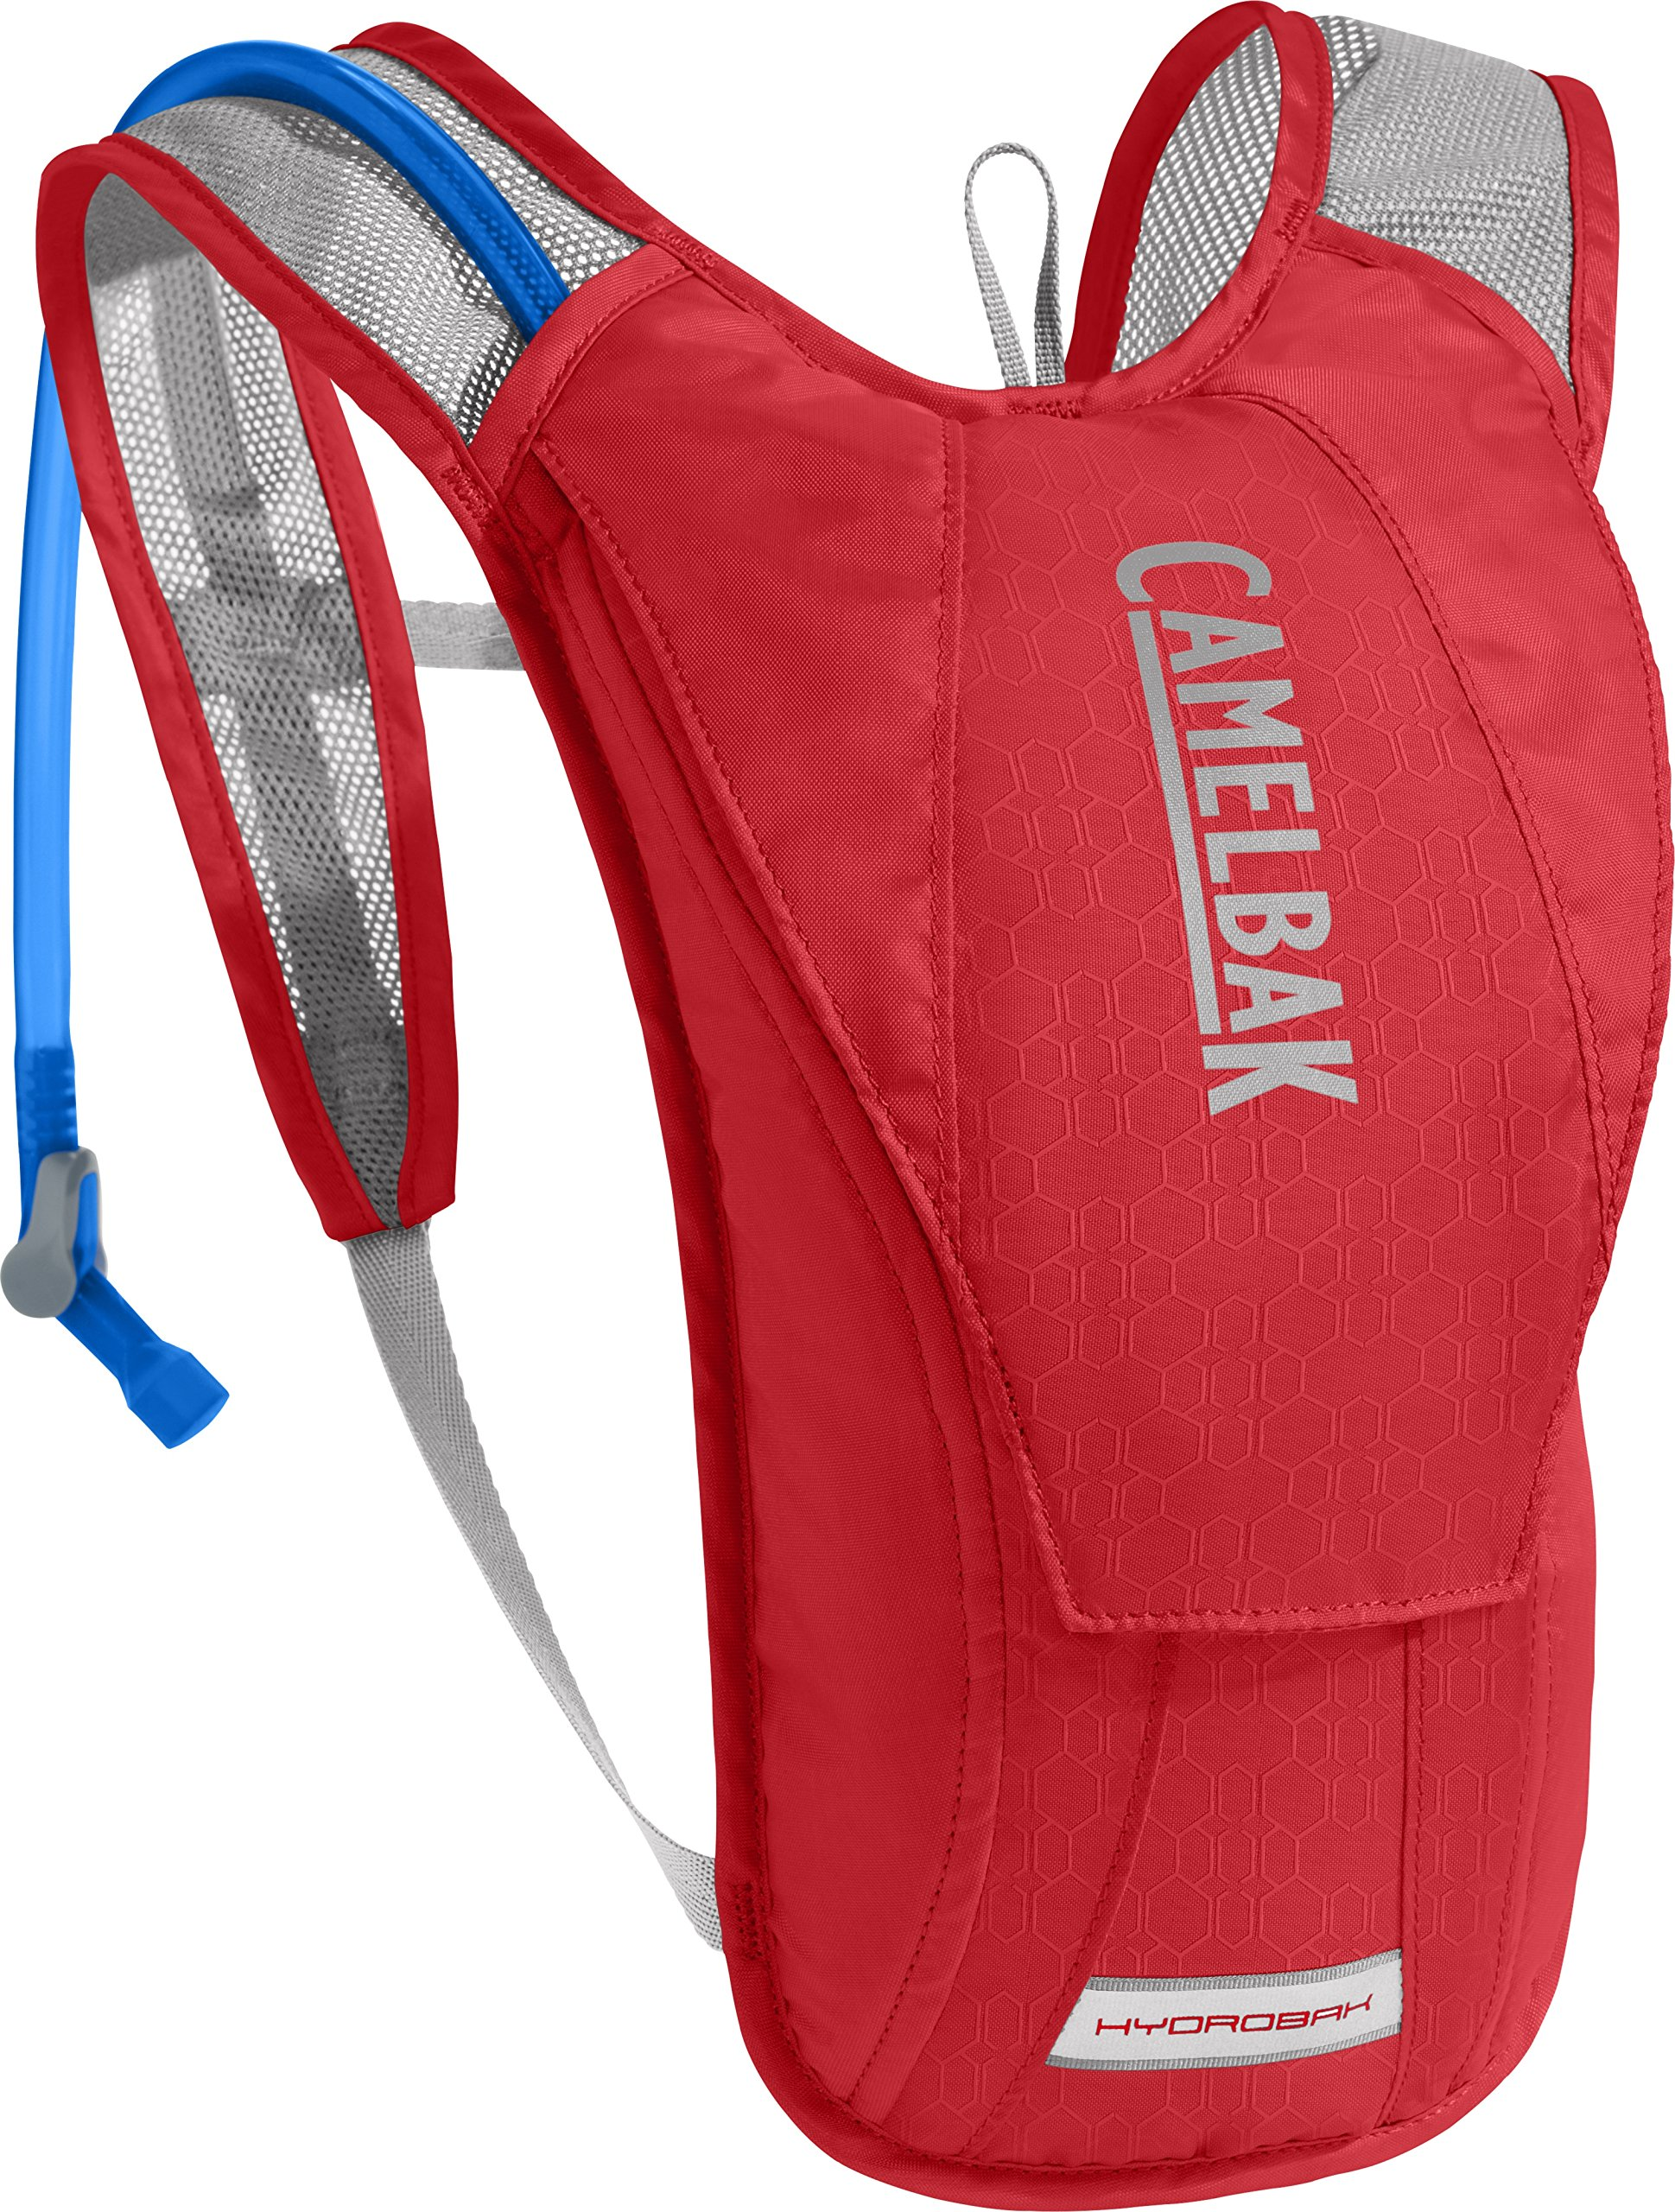 CamelBak HydroBak Crux Reservoir Hydration Pack, Racing Red/Silver, 1.5 L/50 oz by CamelBak